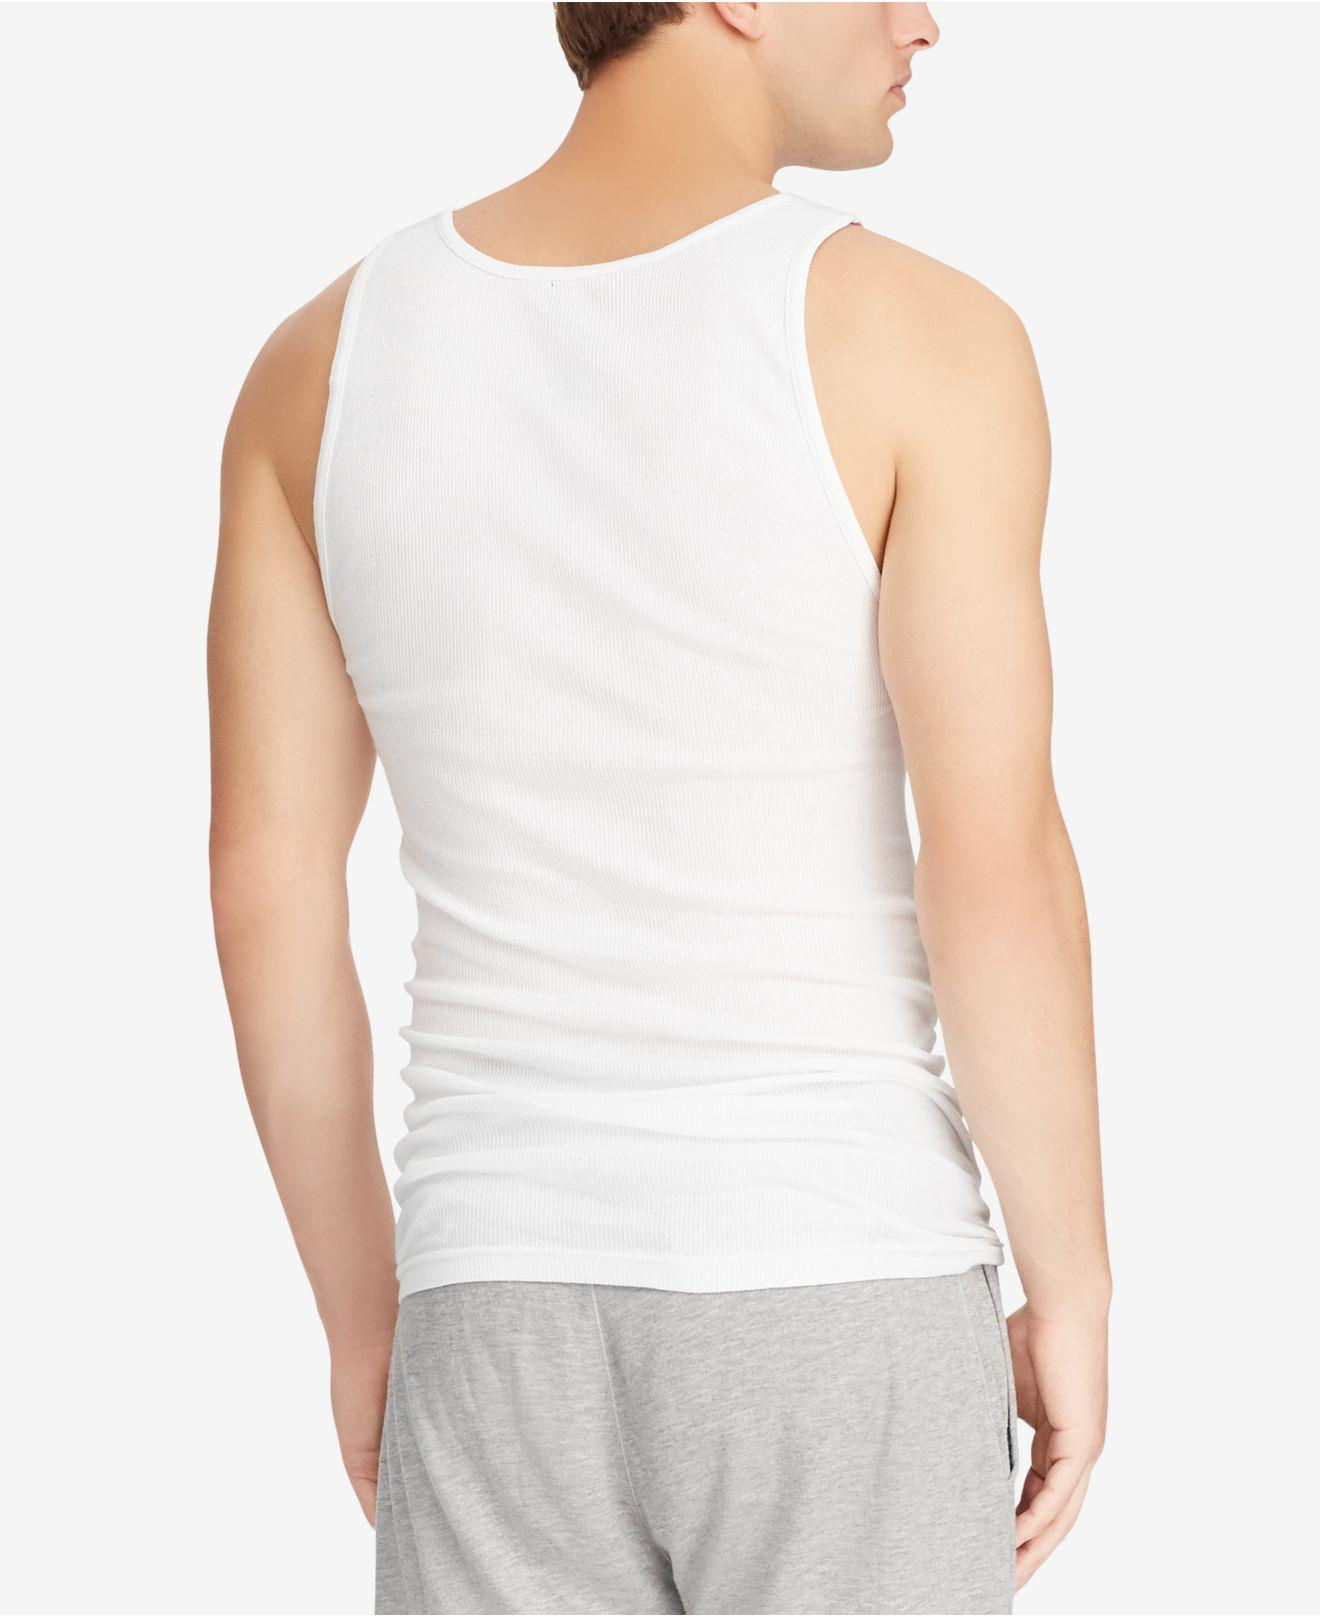 6c0d49f4b6ced1 Lyst - Polo Ralph Lauren Big   Tall 2-pk. Cotton Tank Tops in White for Men